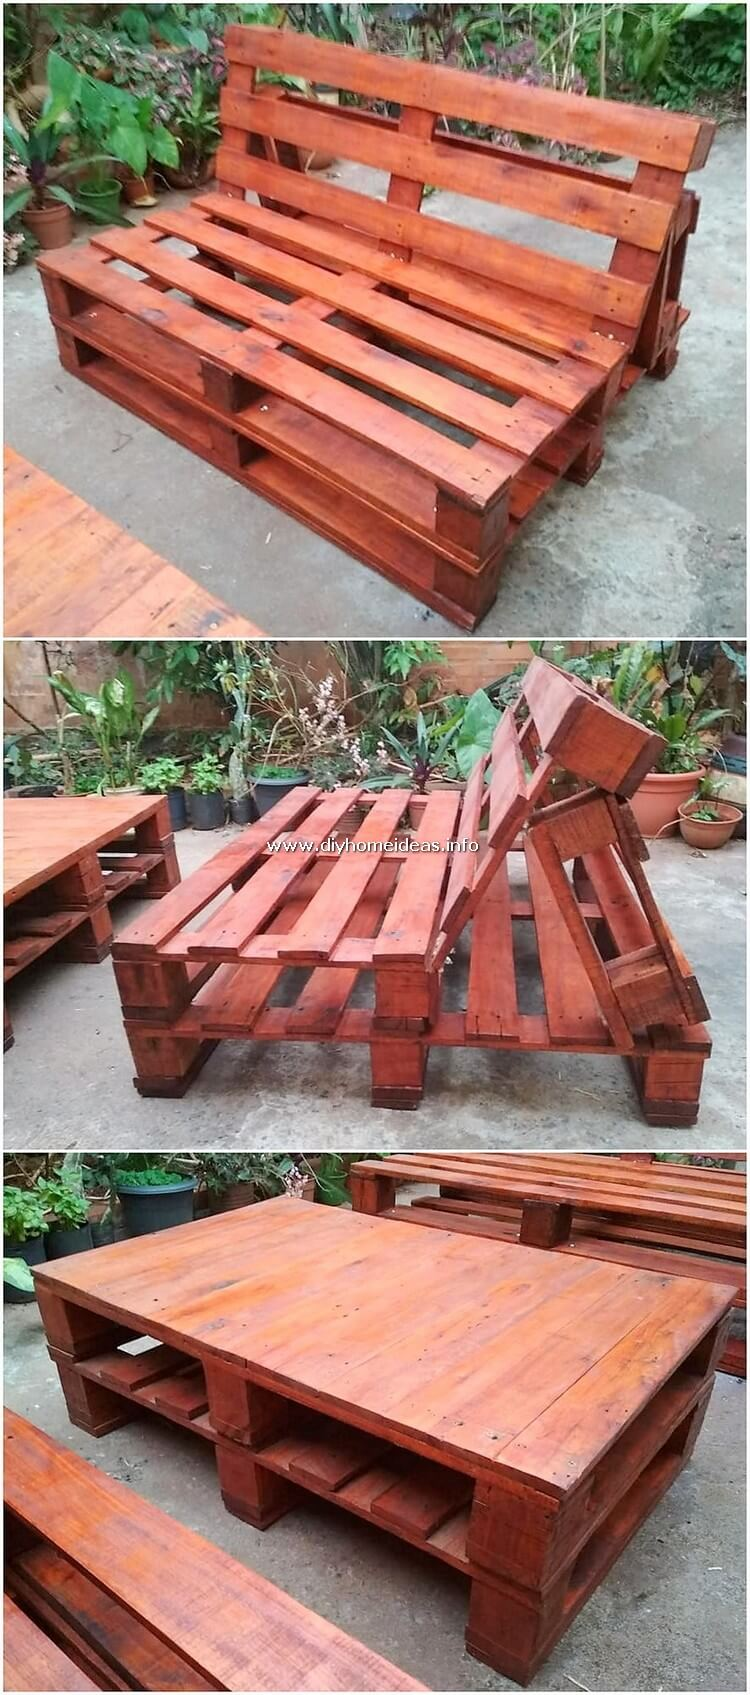 Pallet Bench and Table